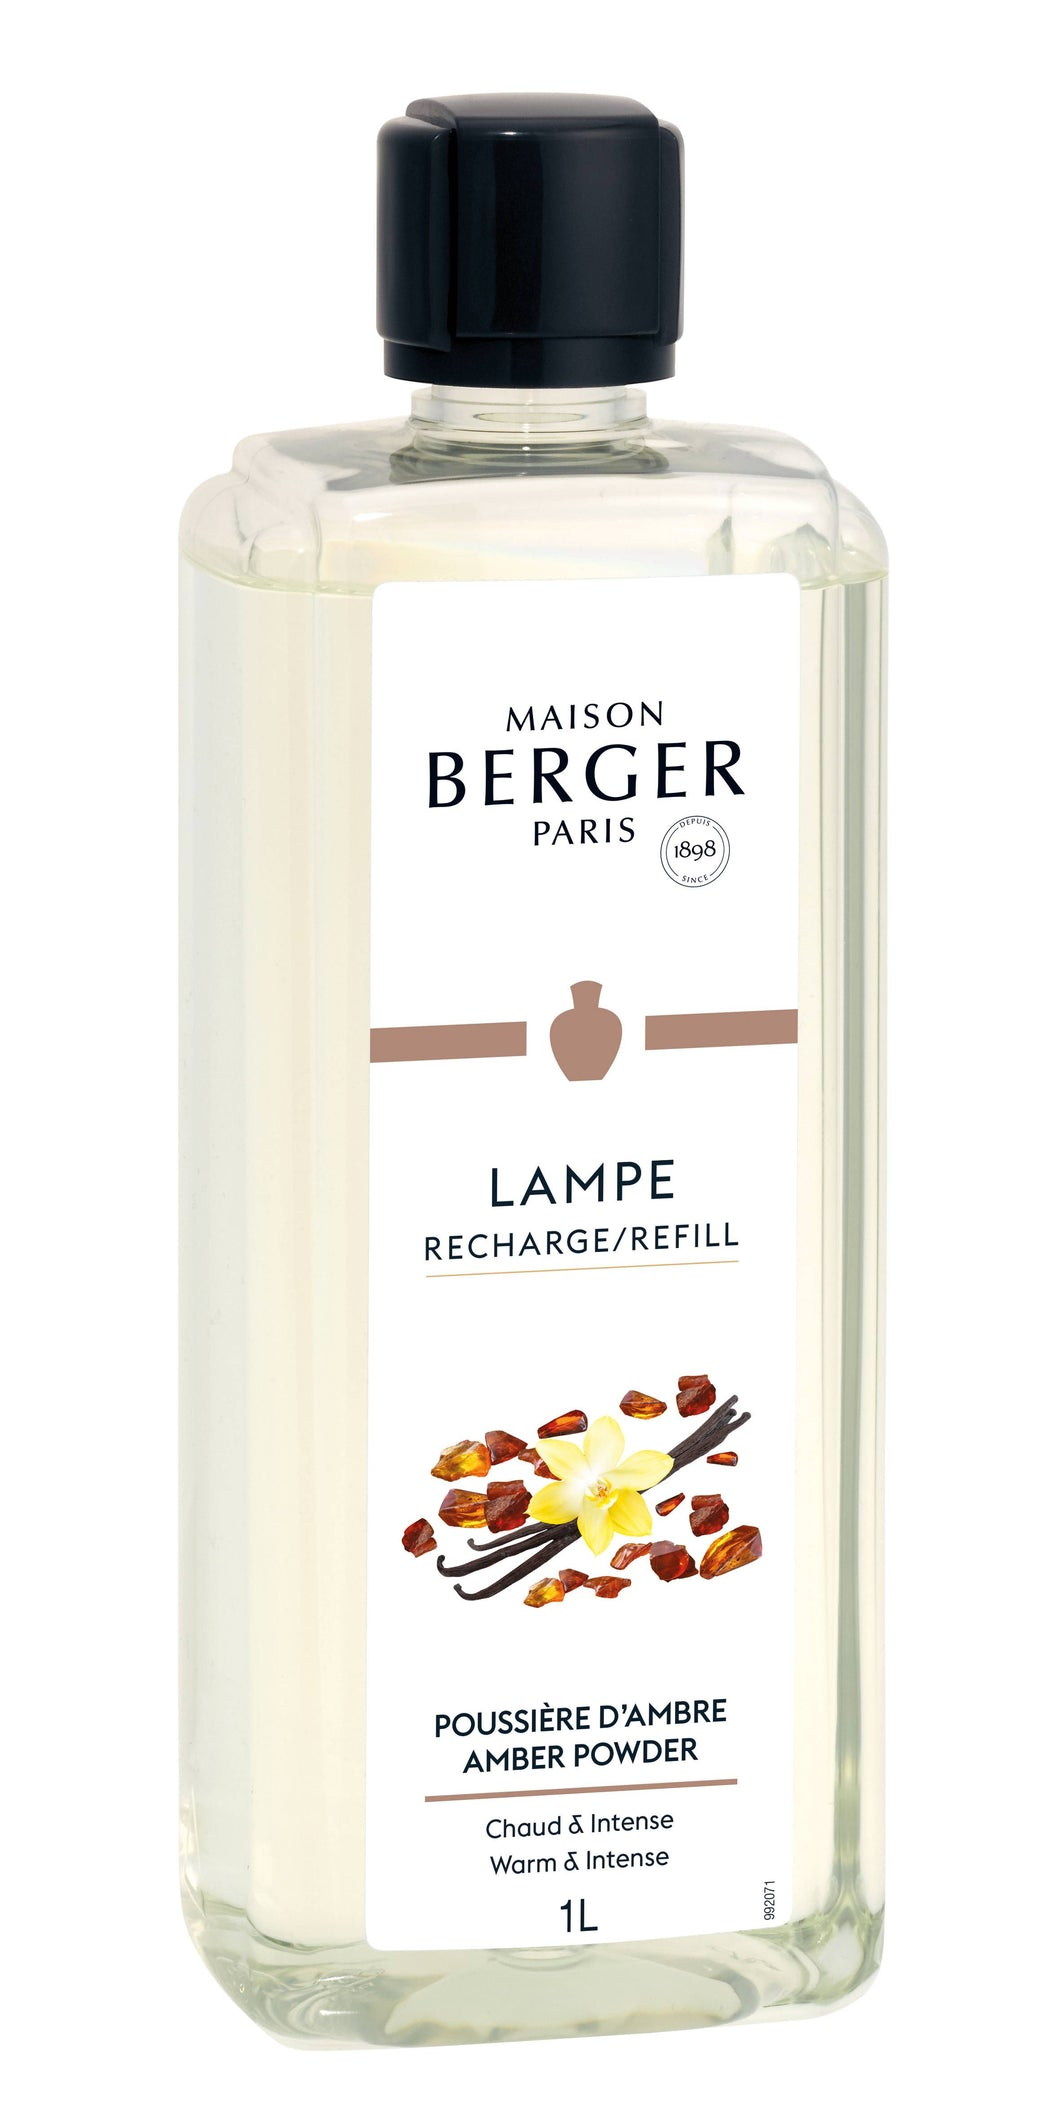 Maison Berger Amber powder 1L